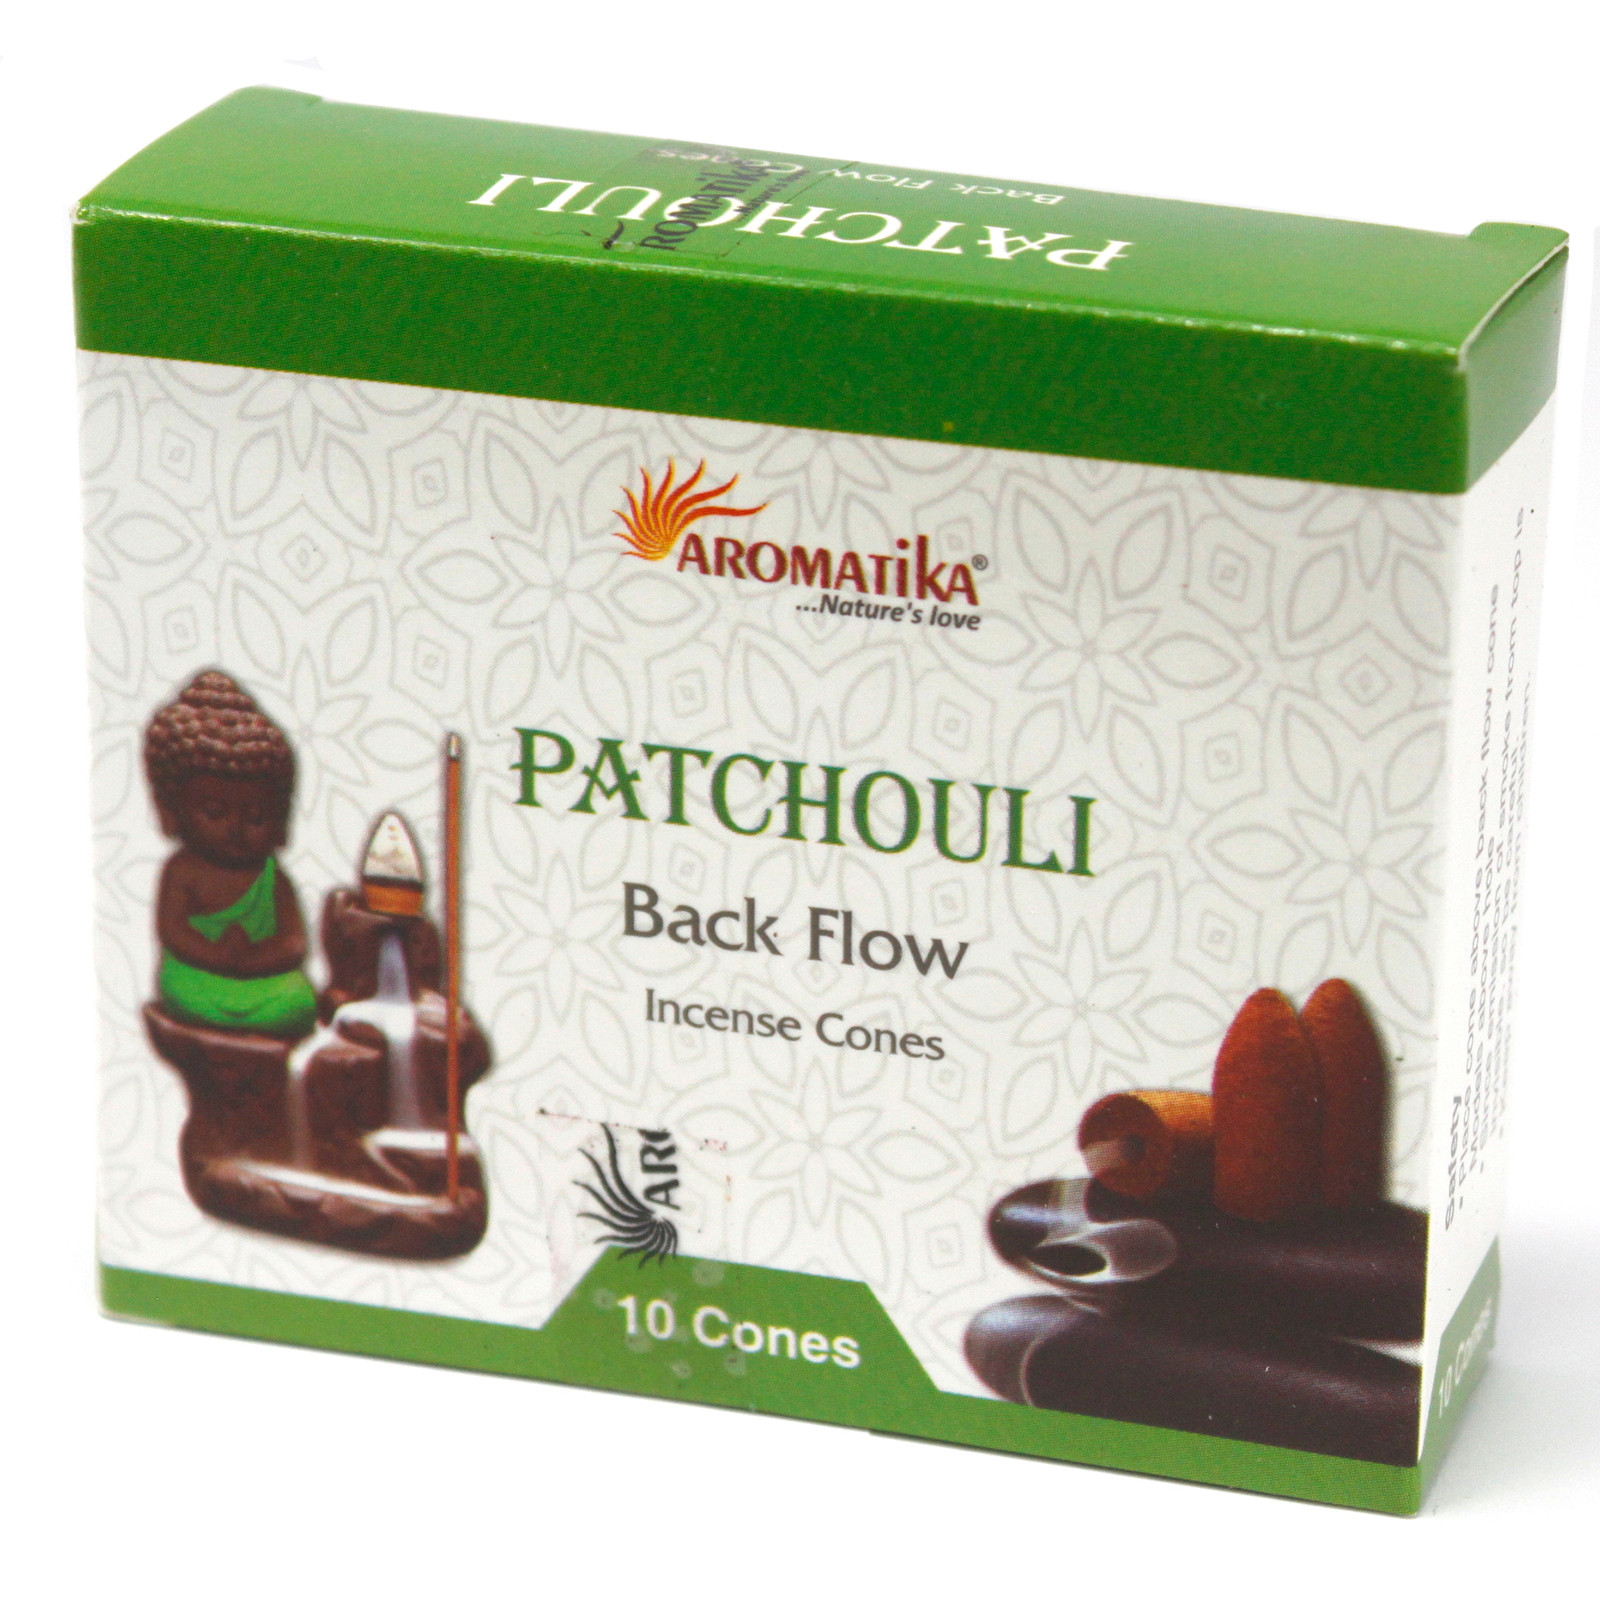 Aromatica Backflow Incense Cones Patchouli